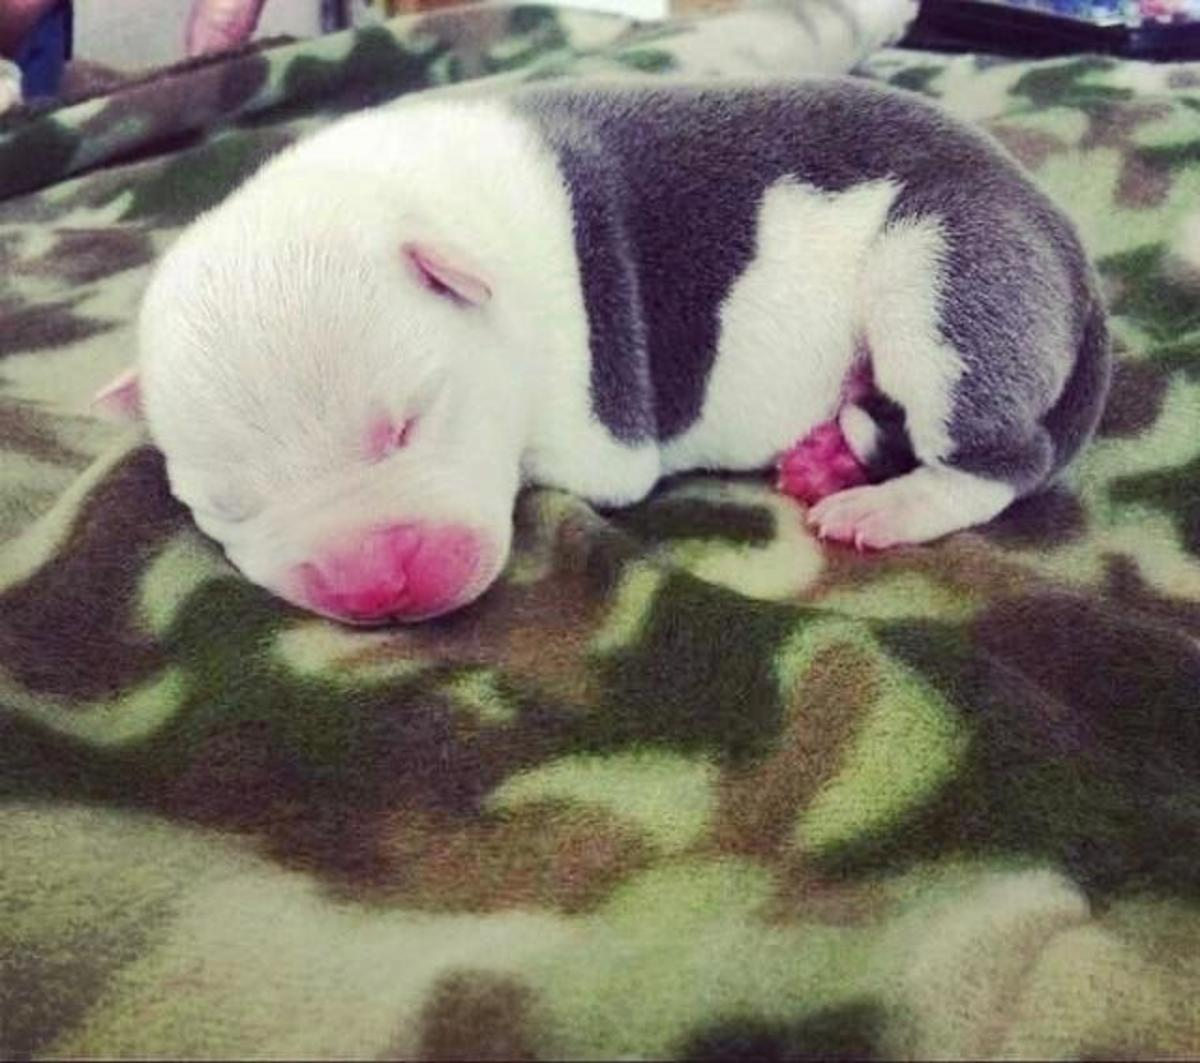 Bruiser Salvador born July 26, 2014. First pic at his new home 3 days old.